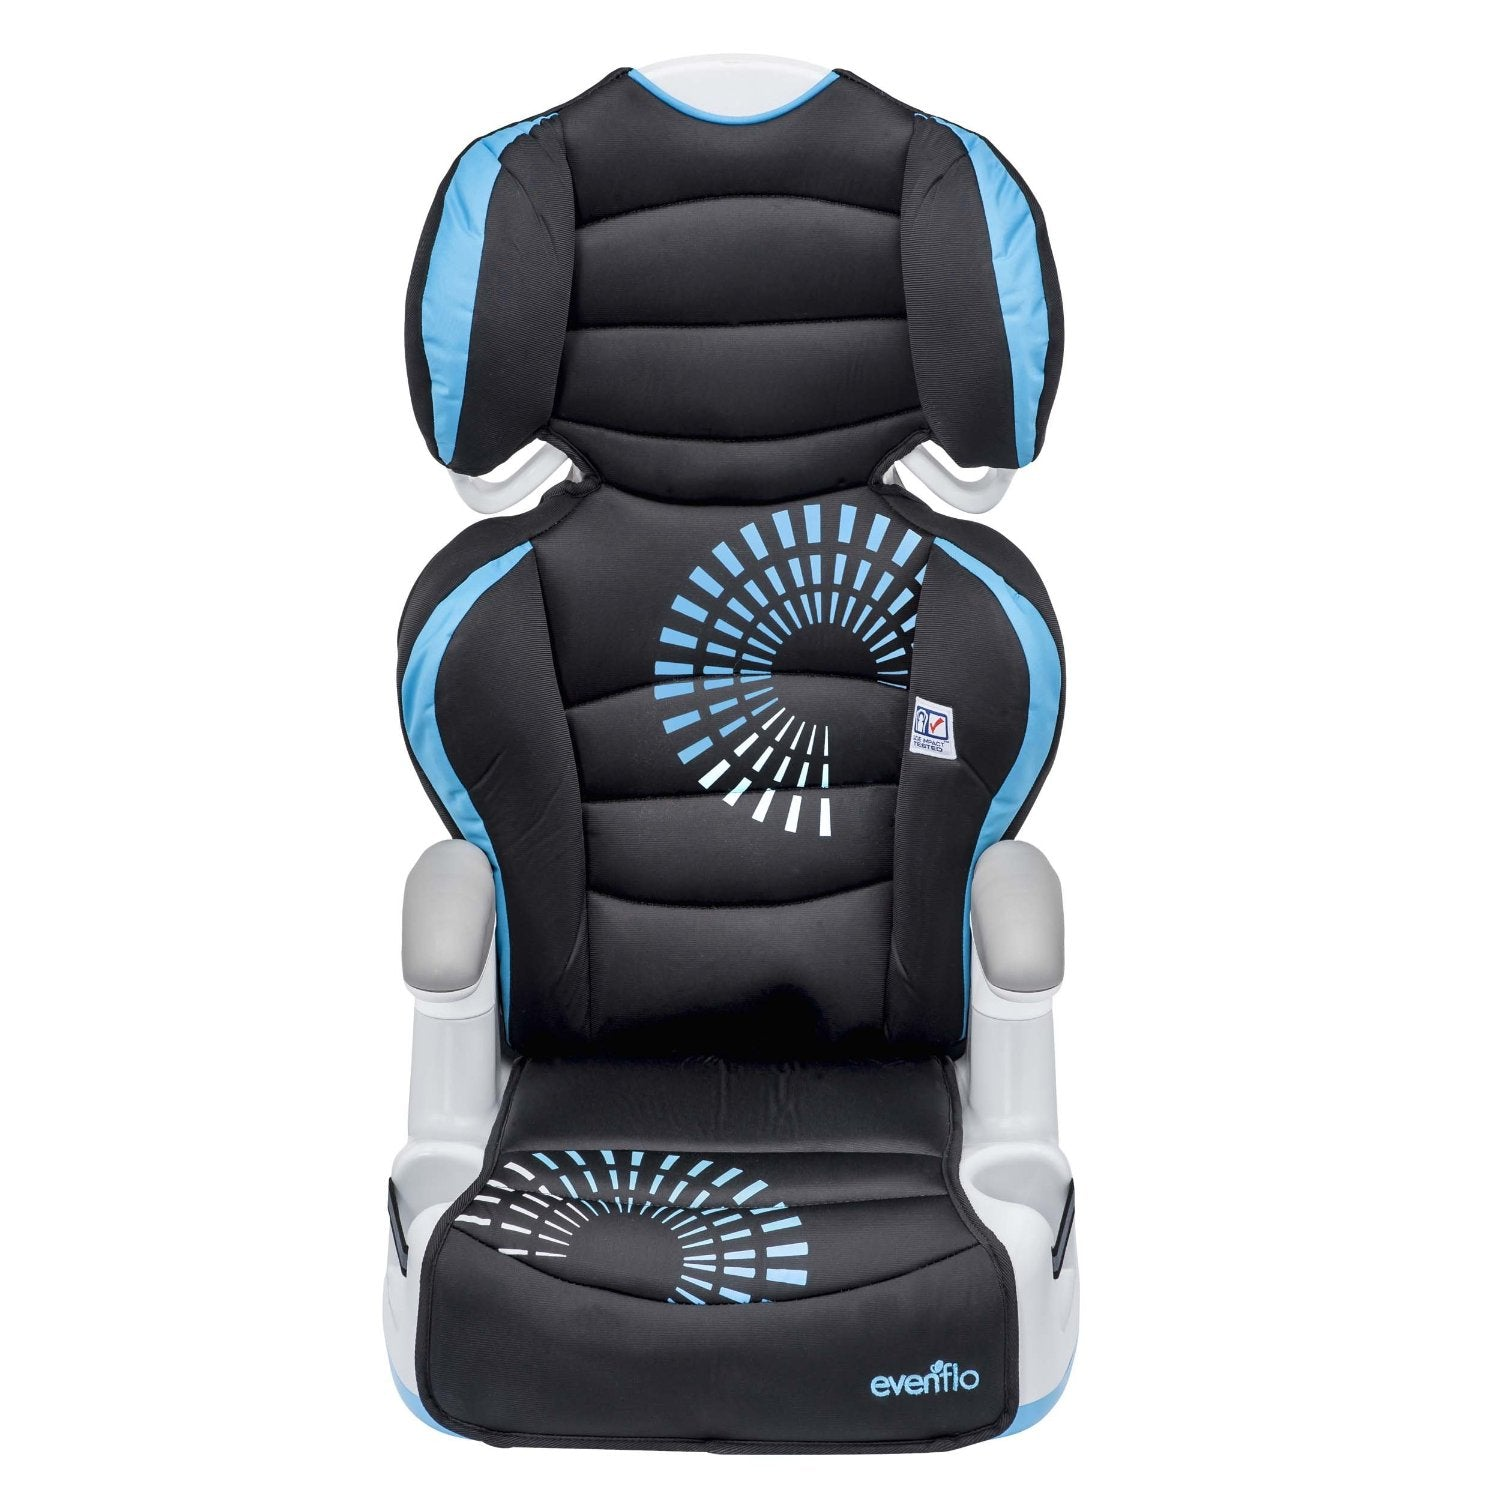 budget high back booster car seats india 2015